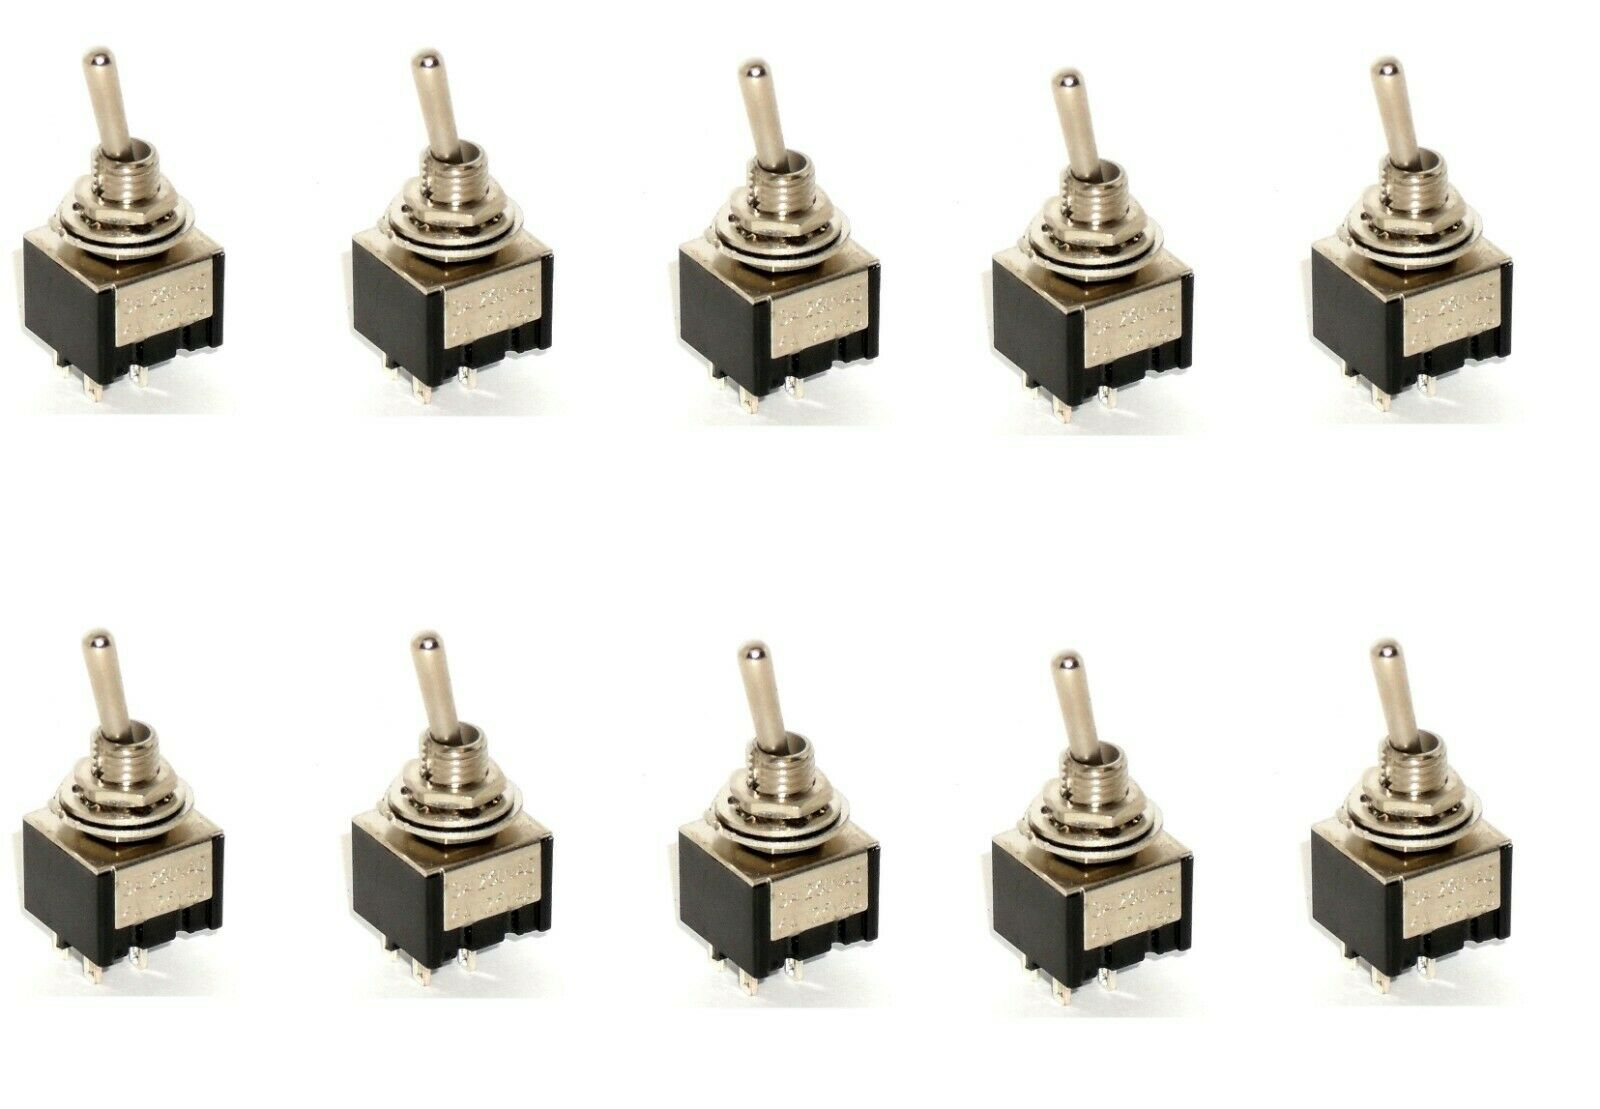 10 Dpst On Off Miniature Toggle Switches Two Pole Single Throw Commercial Switch